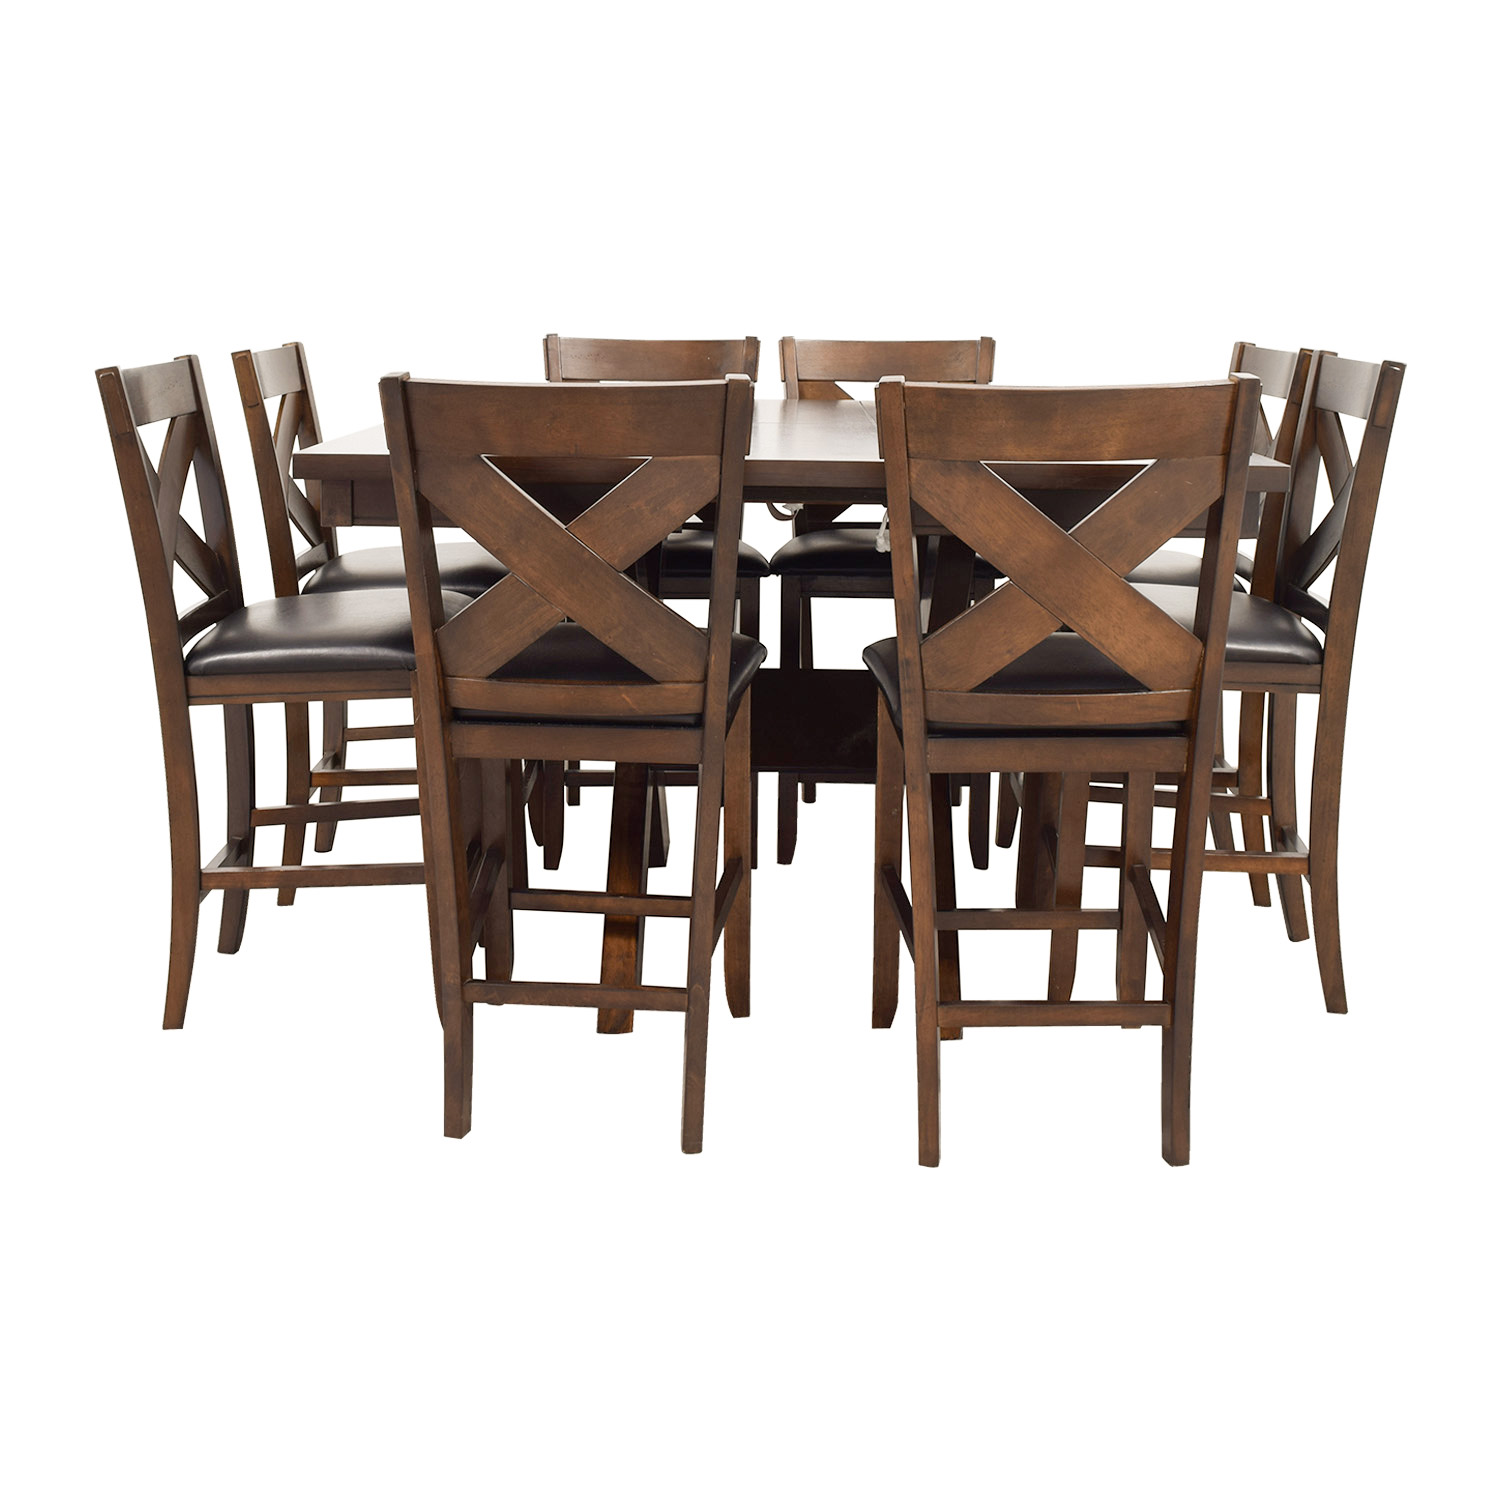 Bobs Furniture Bobs Furniture X Factor Counter Dining Set for sale